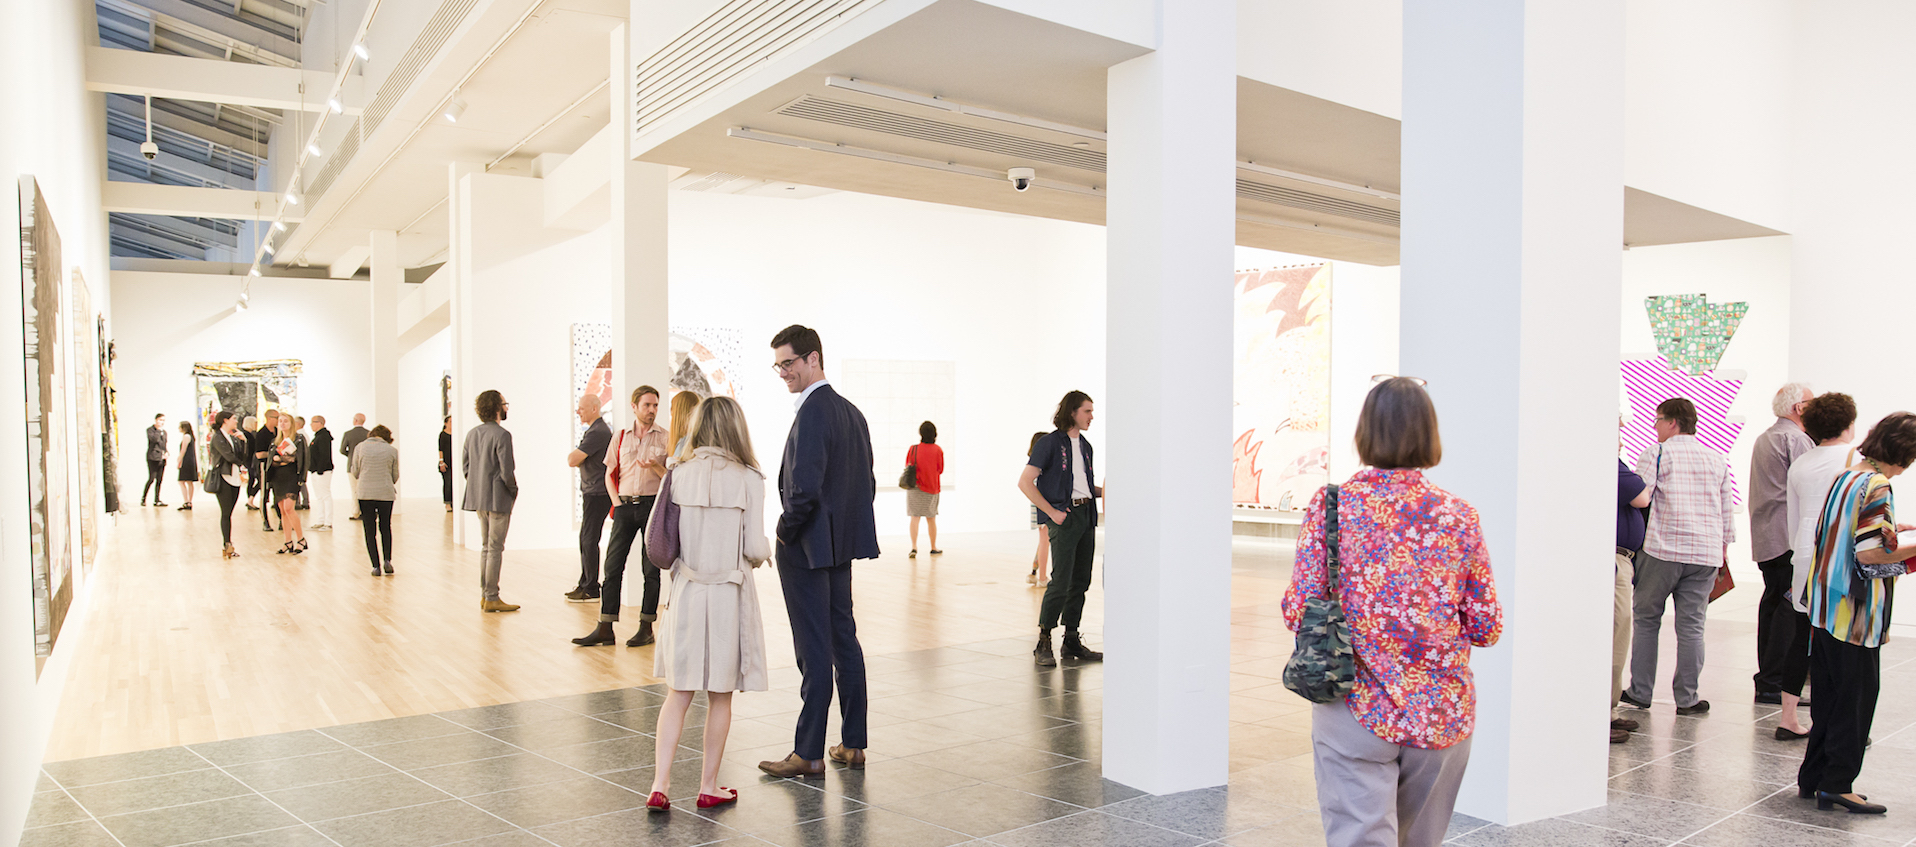 "Image of gallery visitors during the May 18, 2018 preview reception for the Wexner Center for the Arts exhibition ""Inherent Structure."" Photo: Katie Spengler"